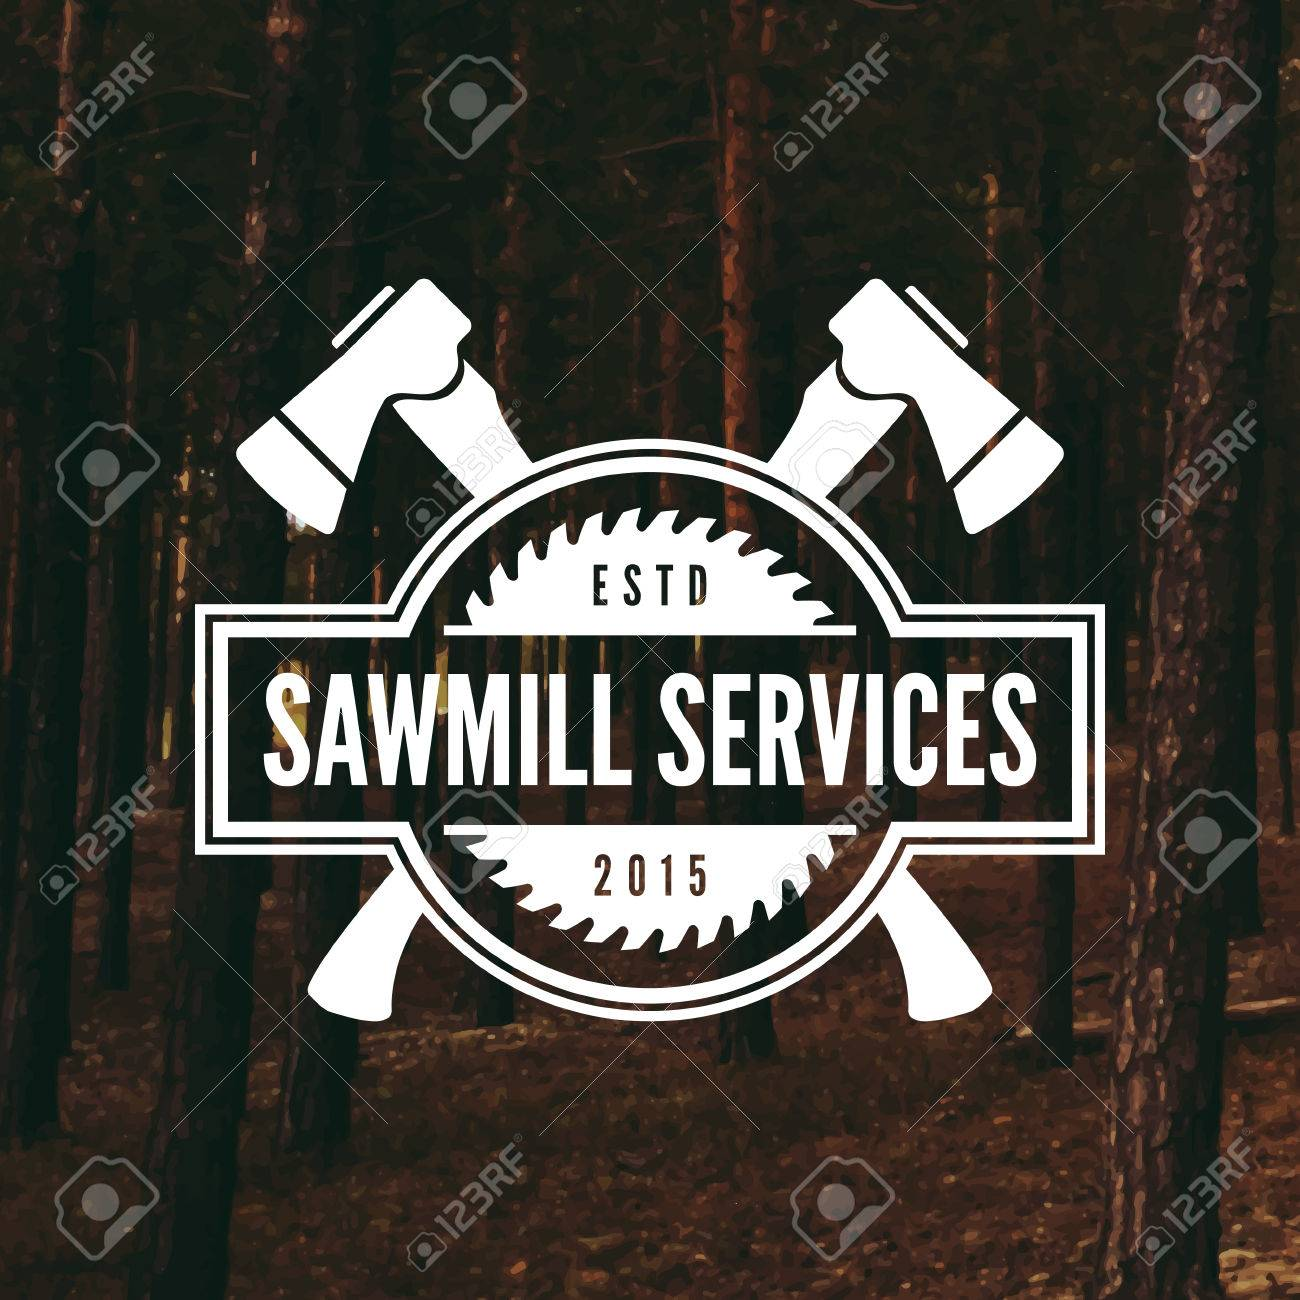 sawmill label on forest background - 42584456